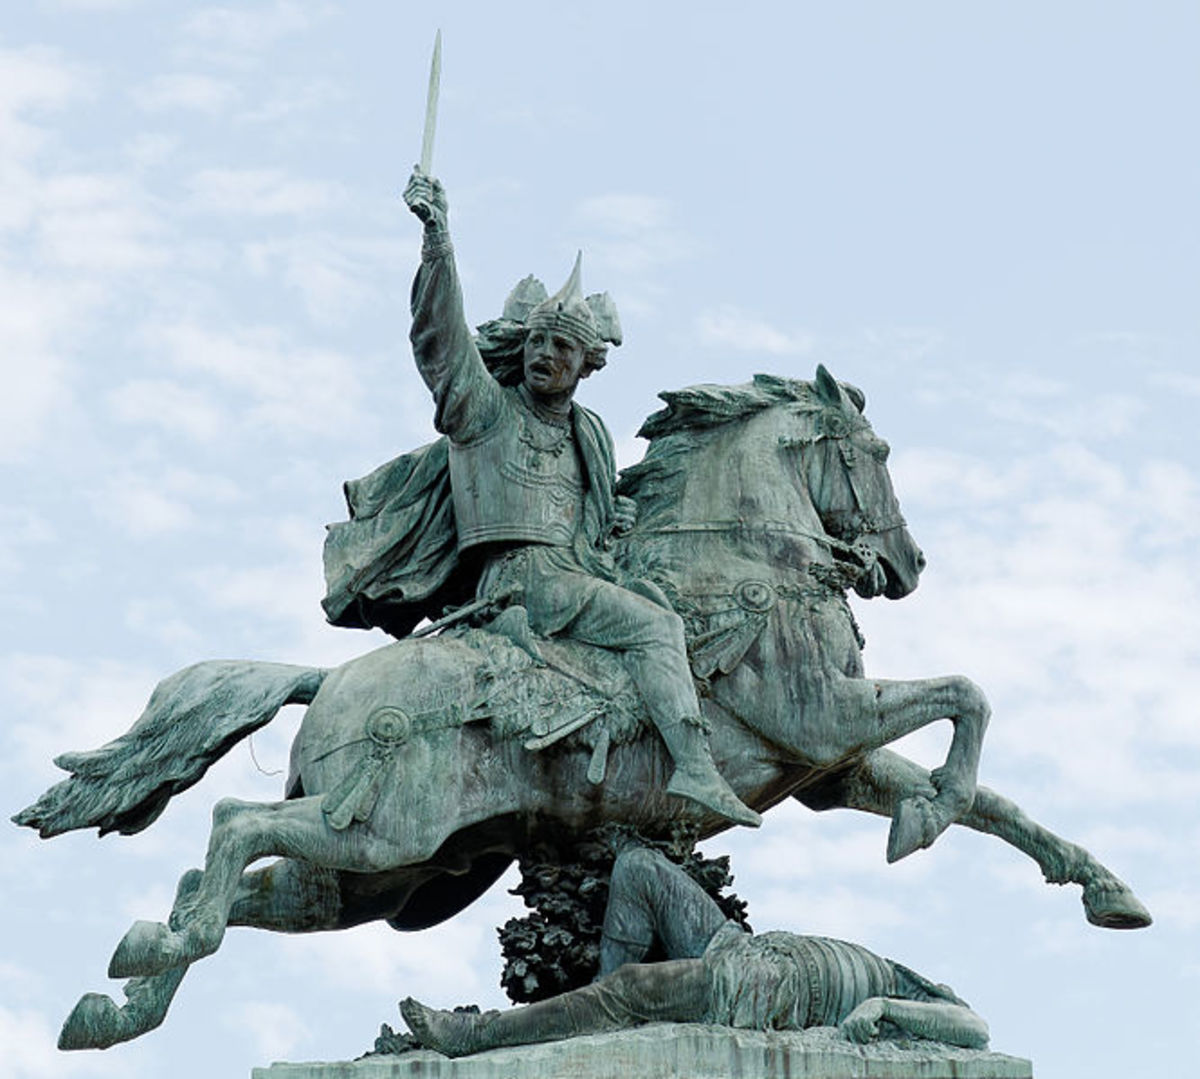 This is a`statue of Vercingetorix, chief of the Arverni tribe who succeeded in uniting the Gallic tribes against Julius Caesar.